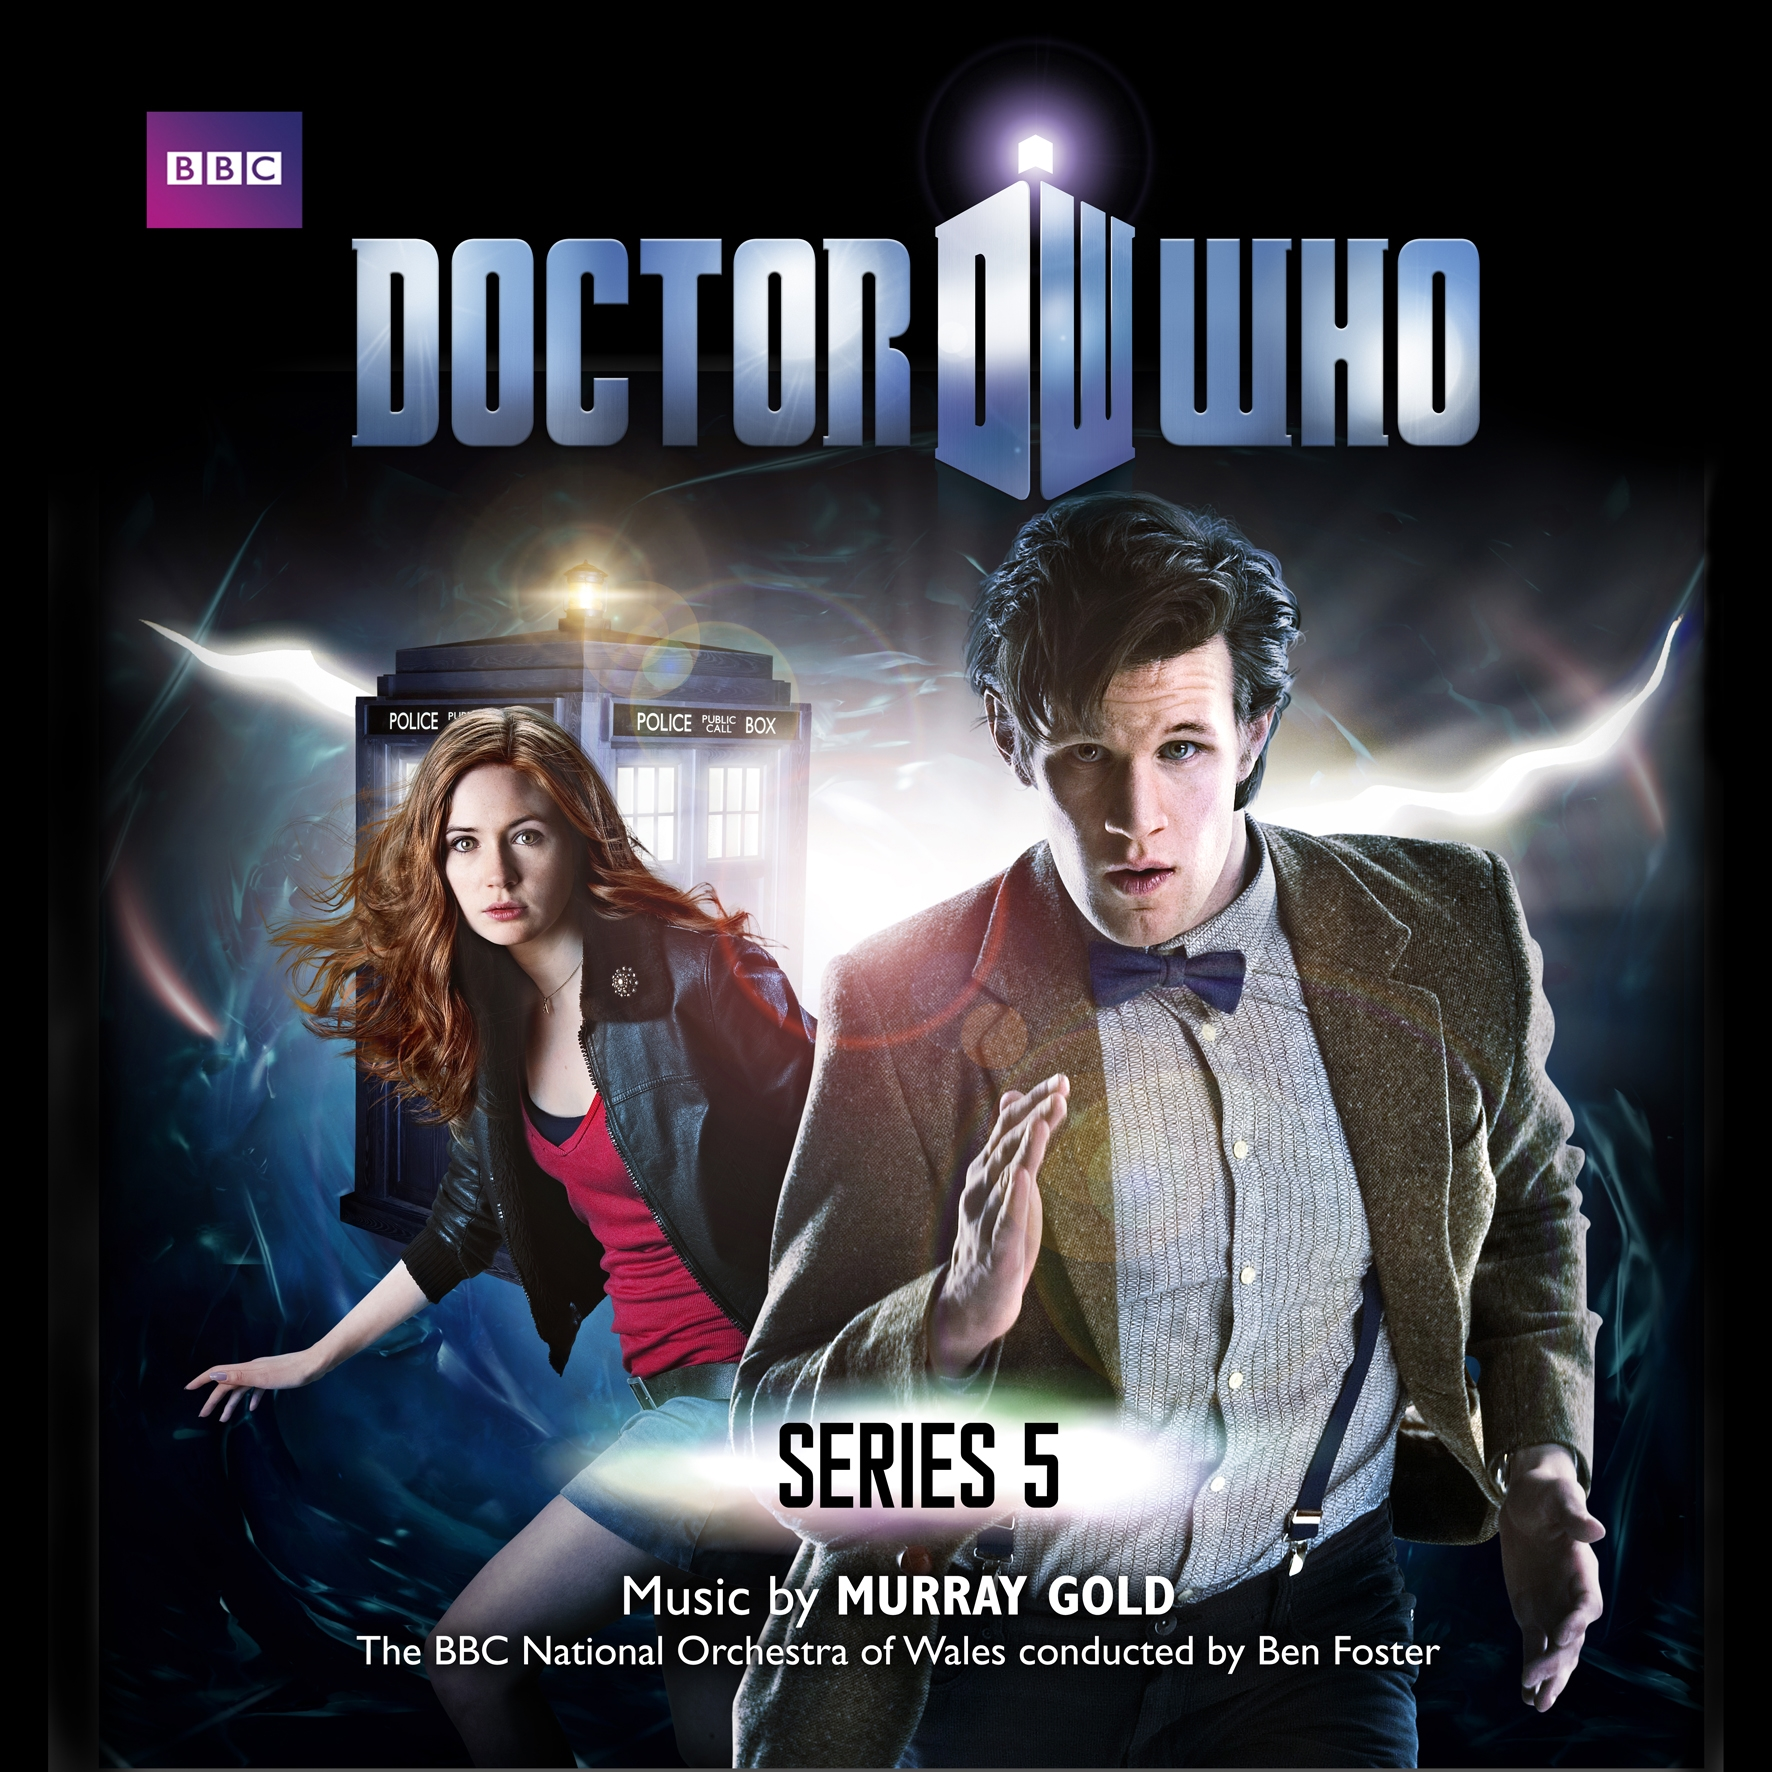 Doctor Who Series 5 Cover HD